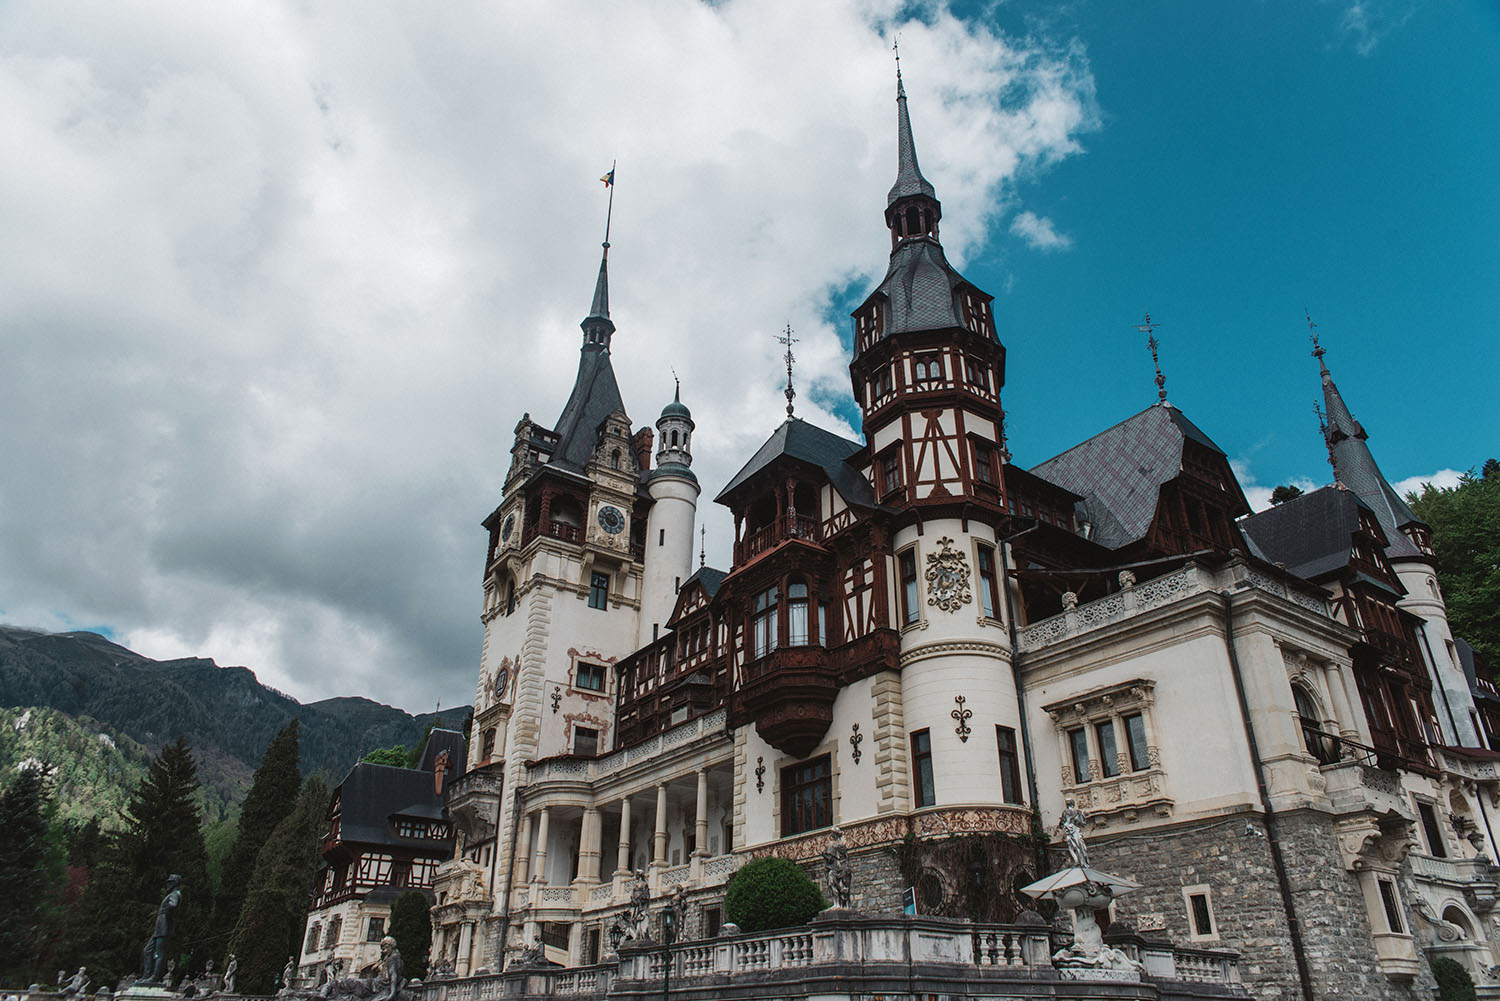 The Stunning Peleş Castle in Romania